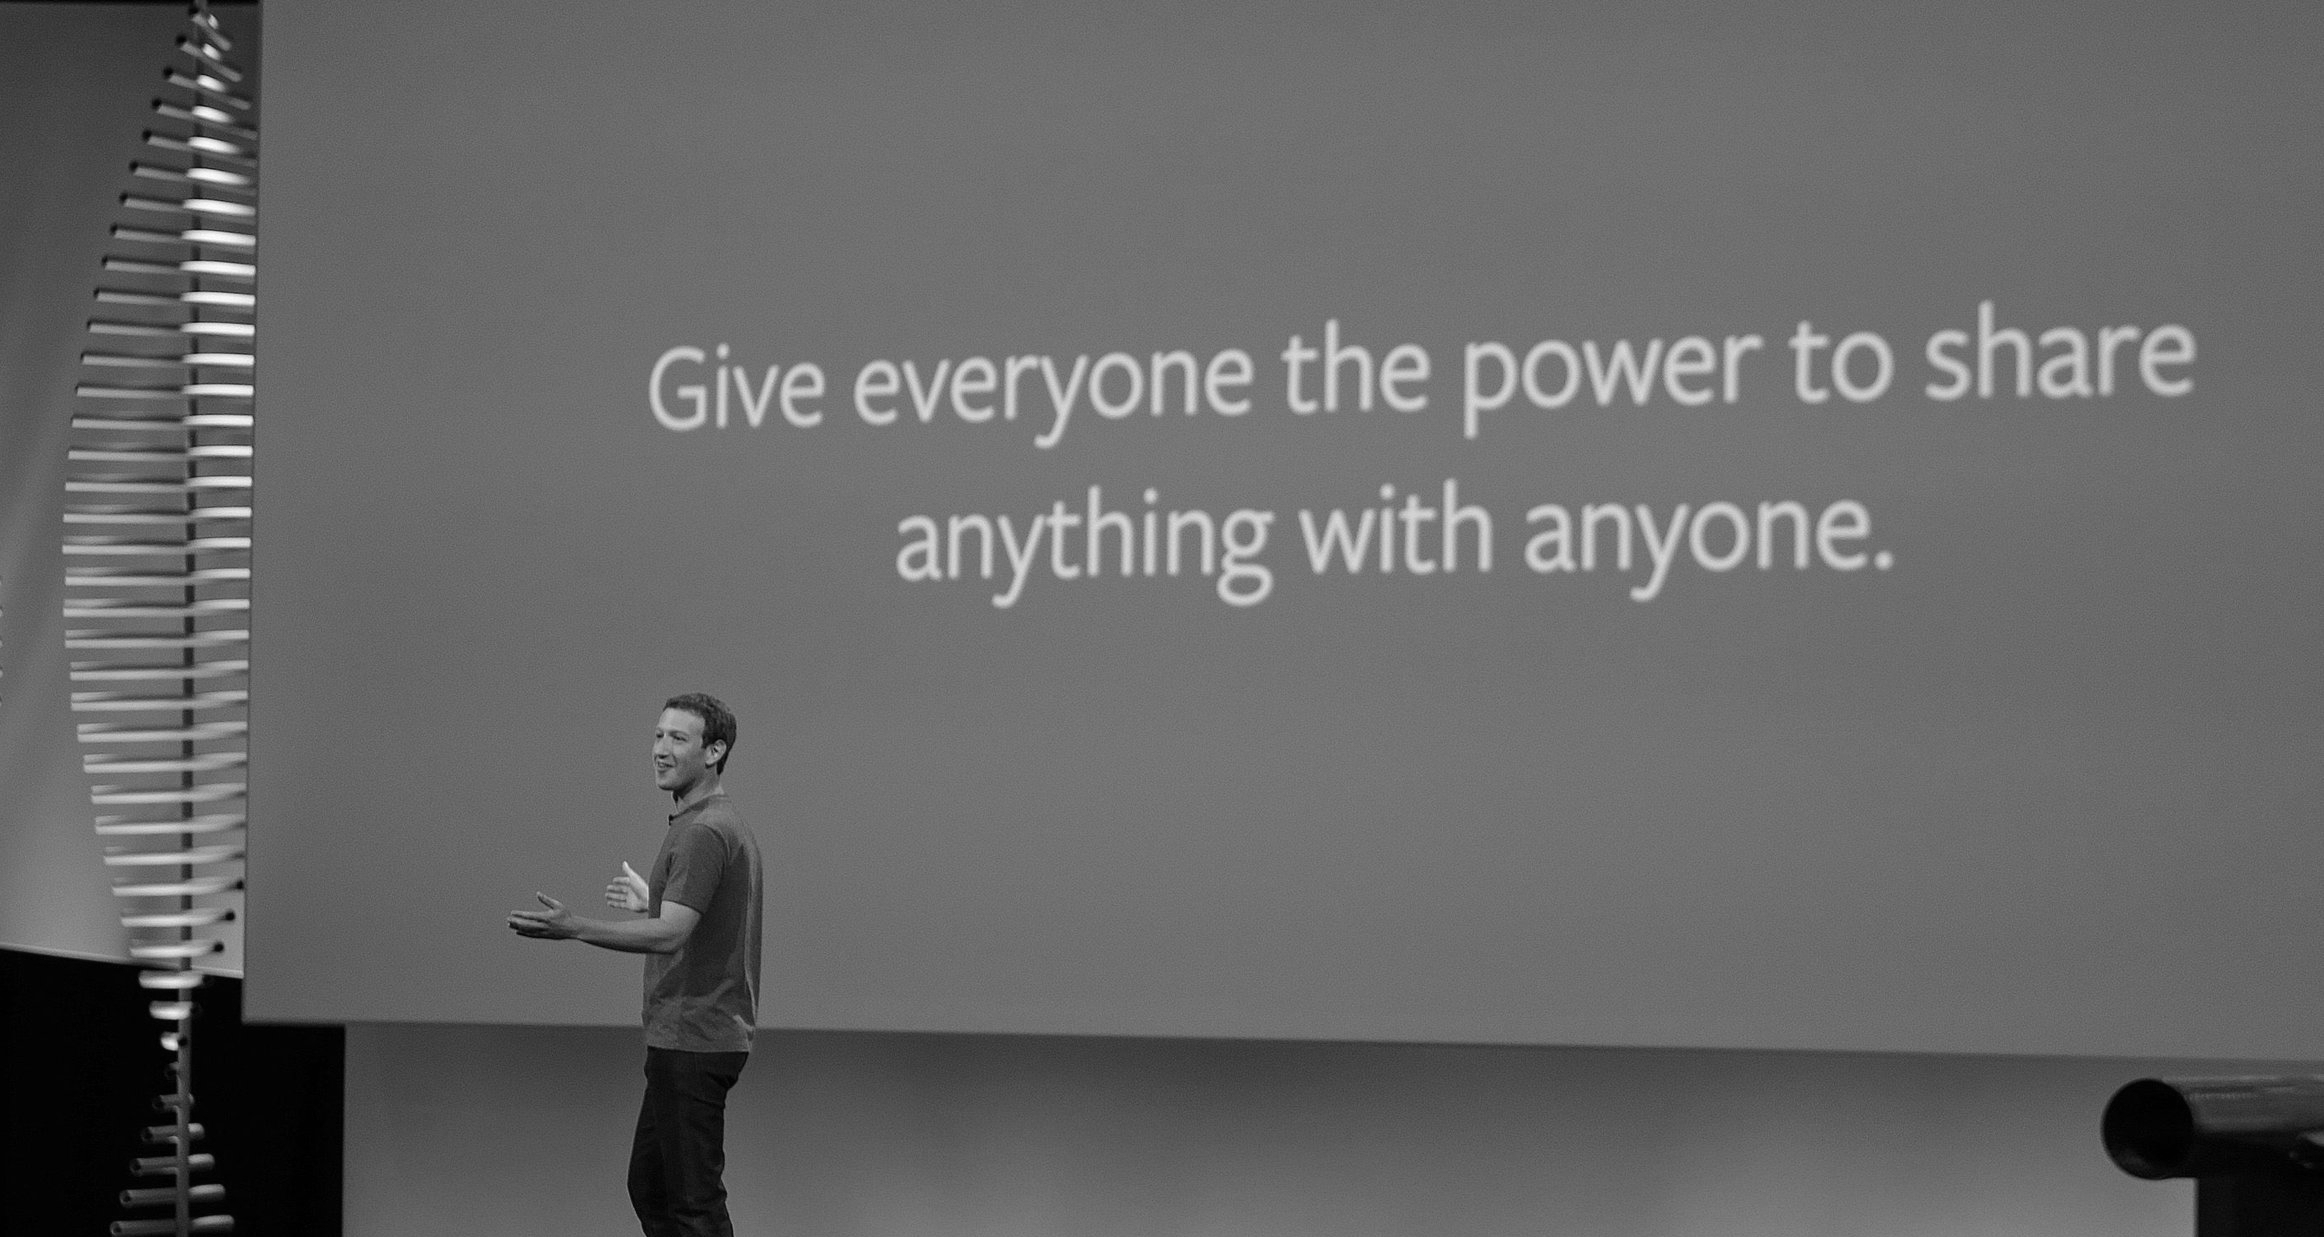 Zuckerberg's mantra assumes everything is up for grabs without permission. Photo by Eric Risberg (AP).